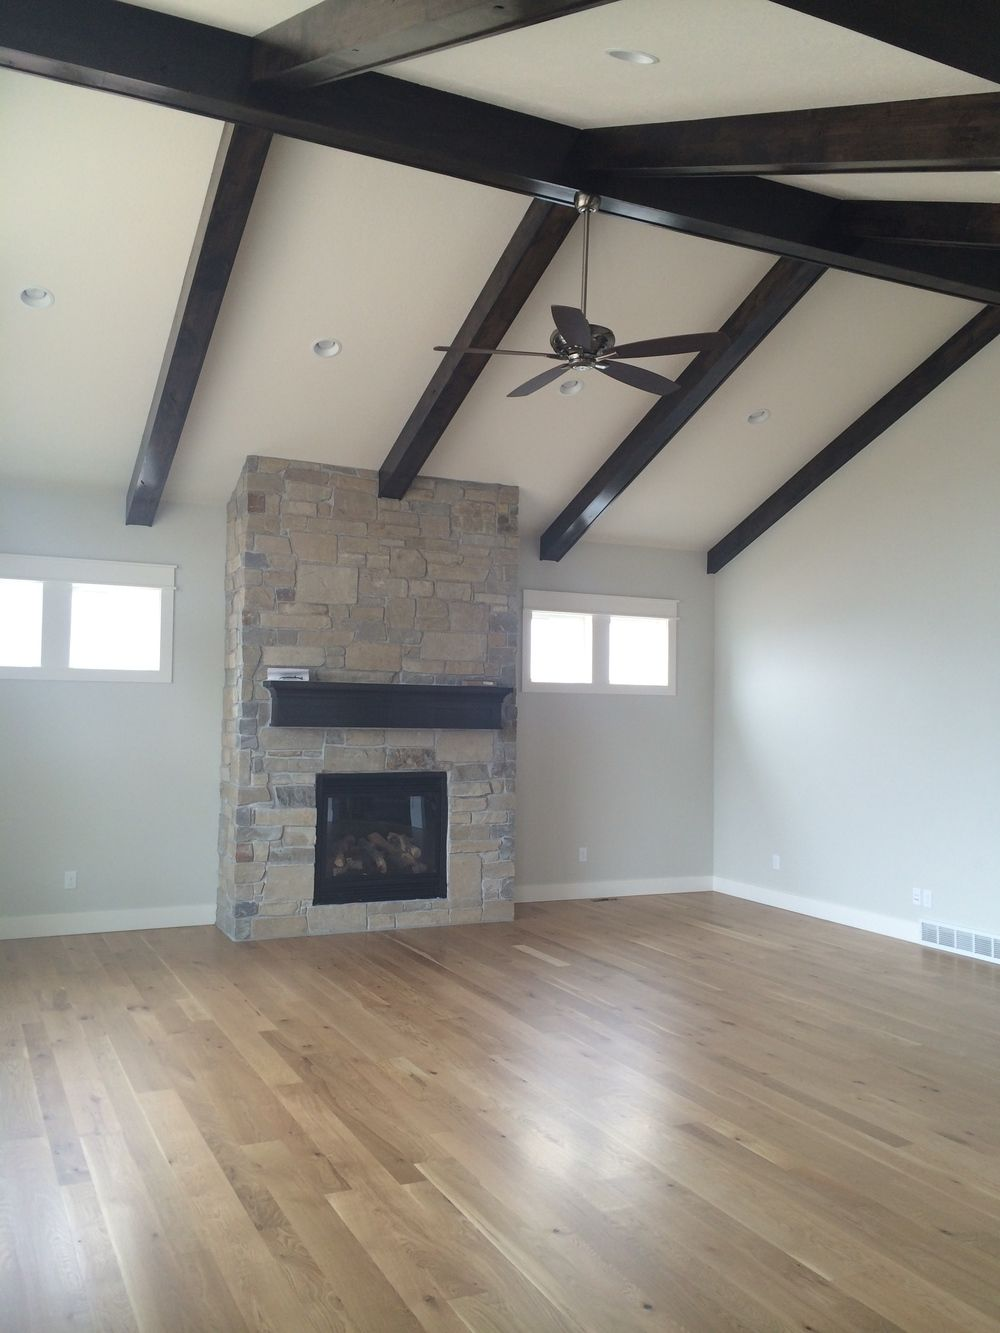 Faux beams highlight the vaulted ceiling. The beams and